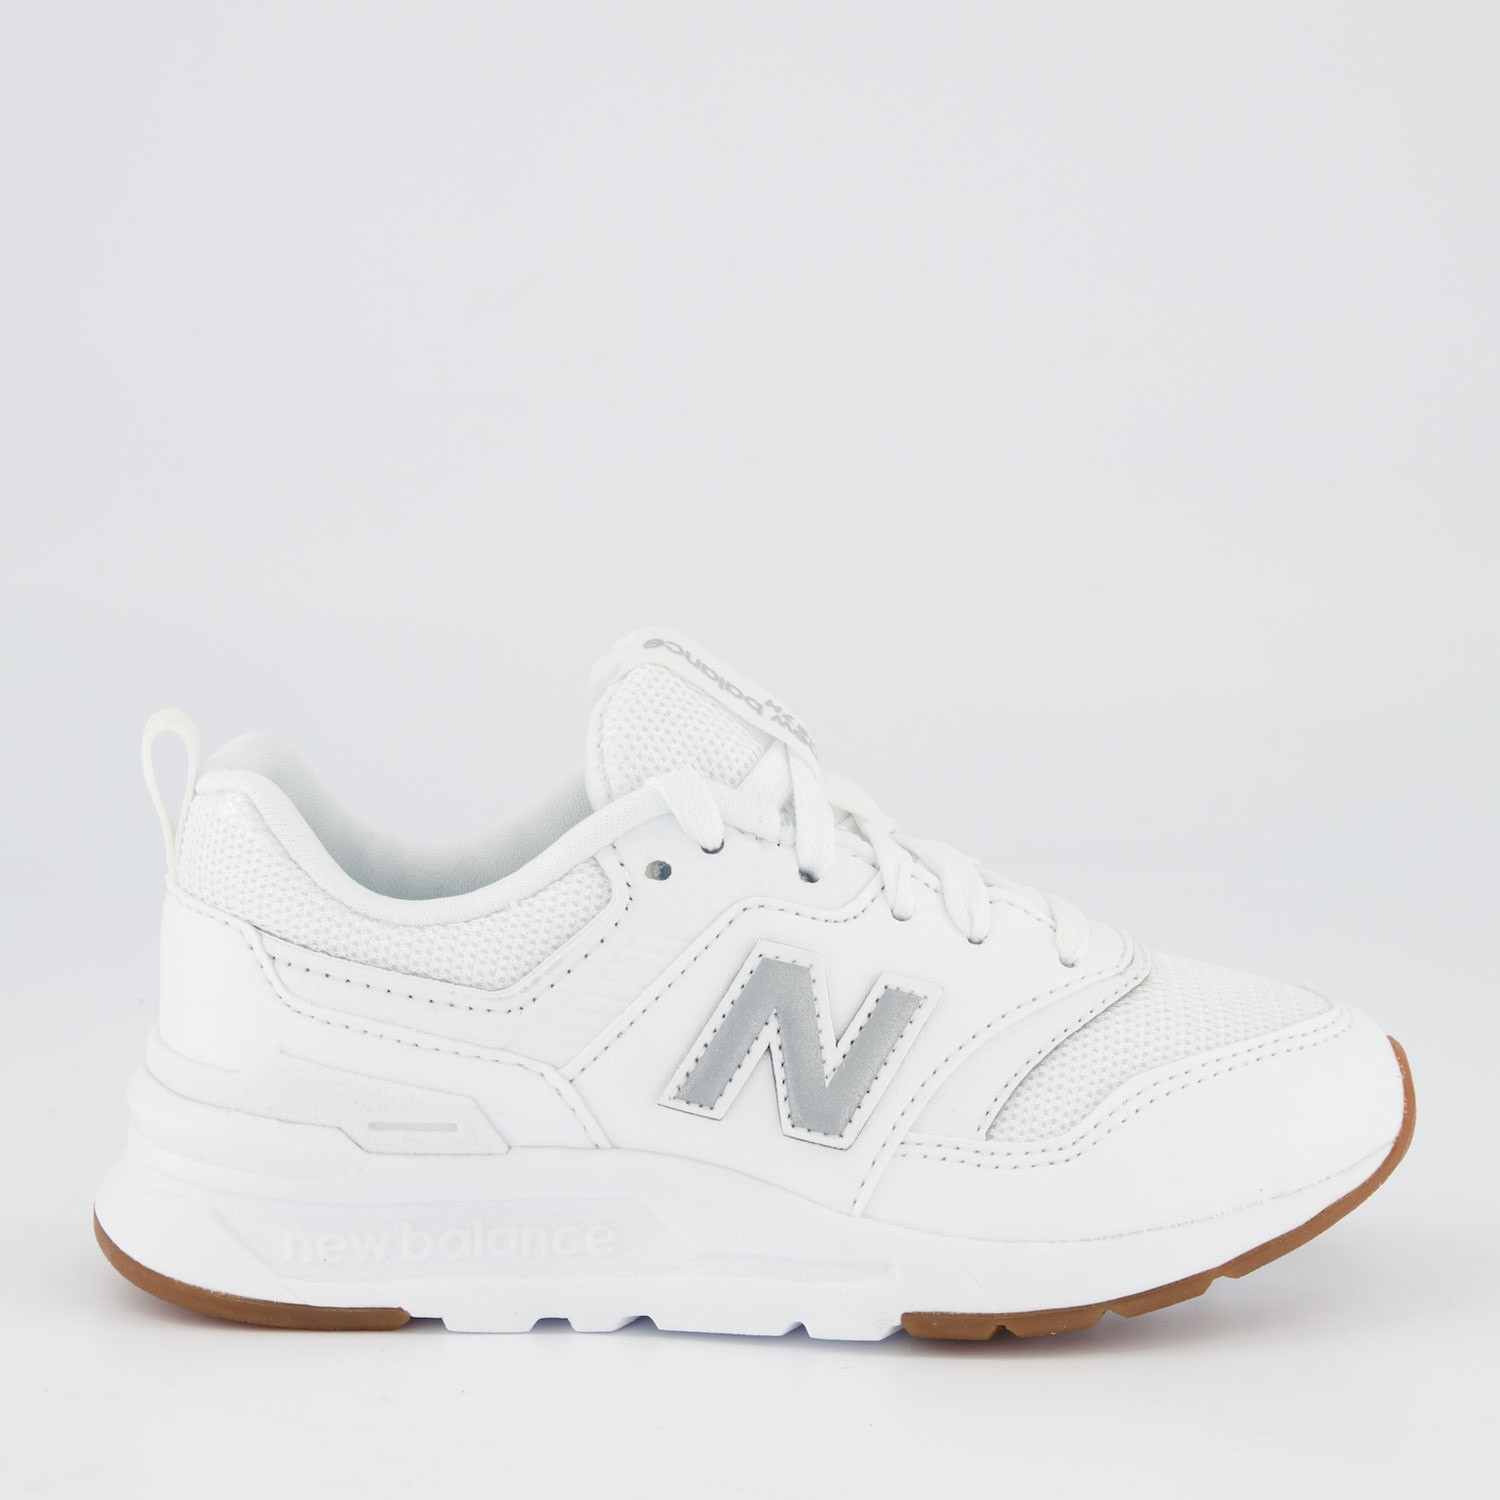 Picture of New Balance PR997 kids sneakers white